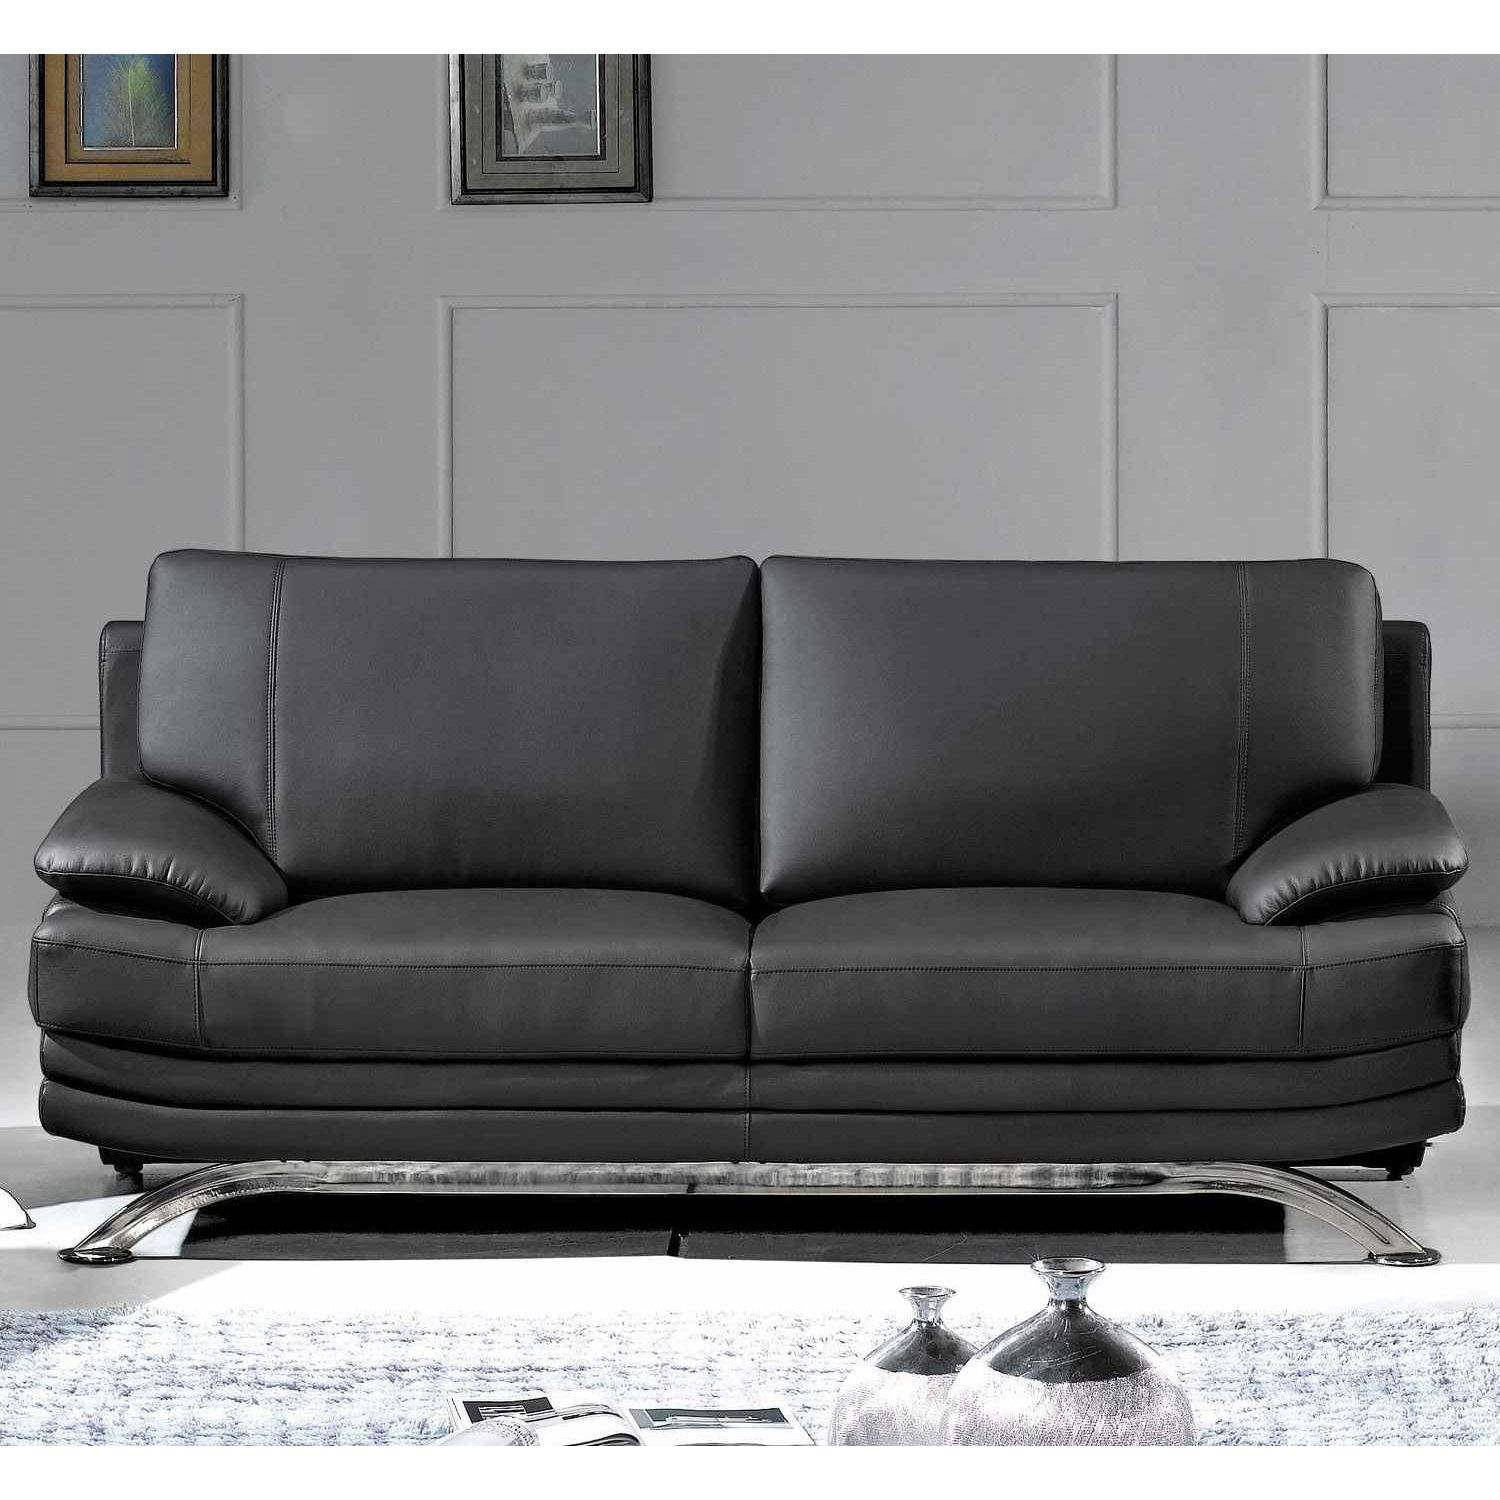 Deco in paris canape cuir noir 3 places romeo can romeo 3p pu noir - Canape cuir noir but ...